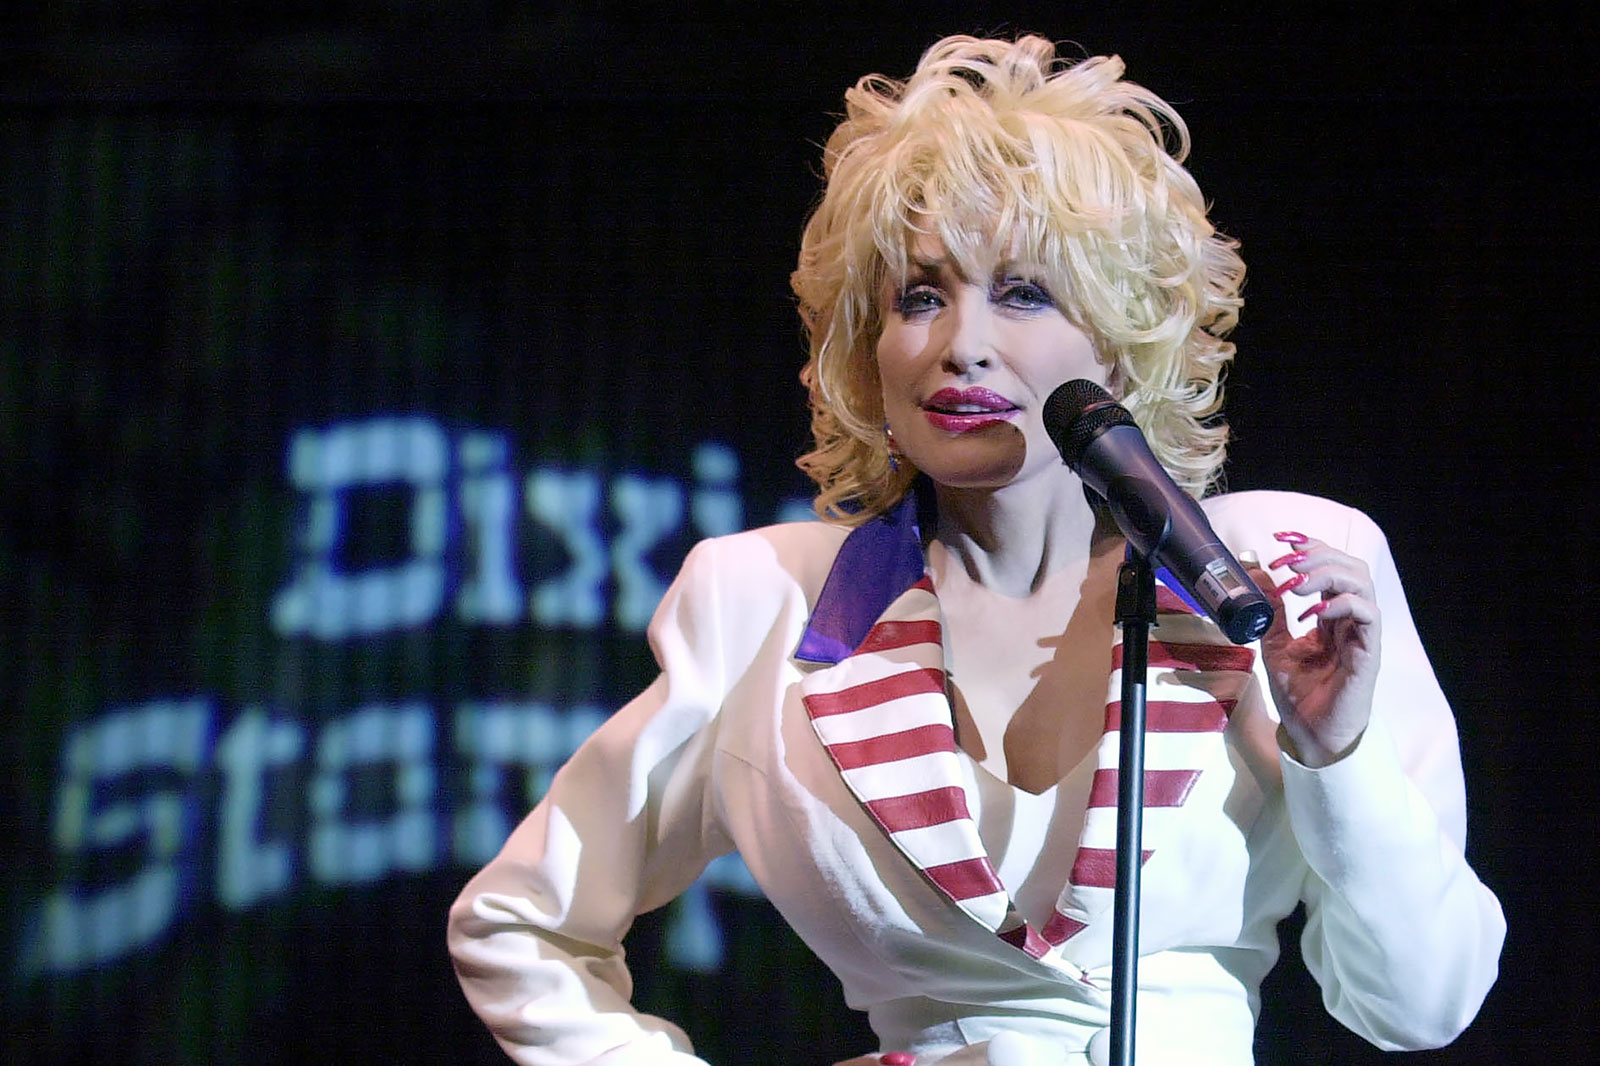 DOLLY'S LOOK, ORLANDO, USA - 18 Jun 2003